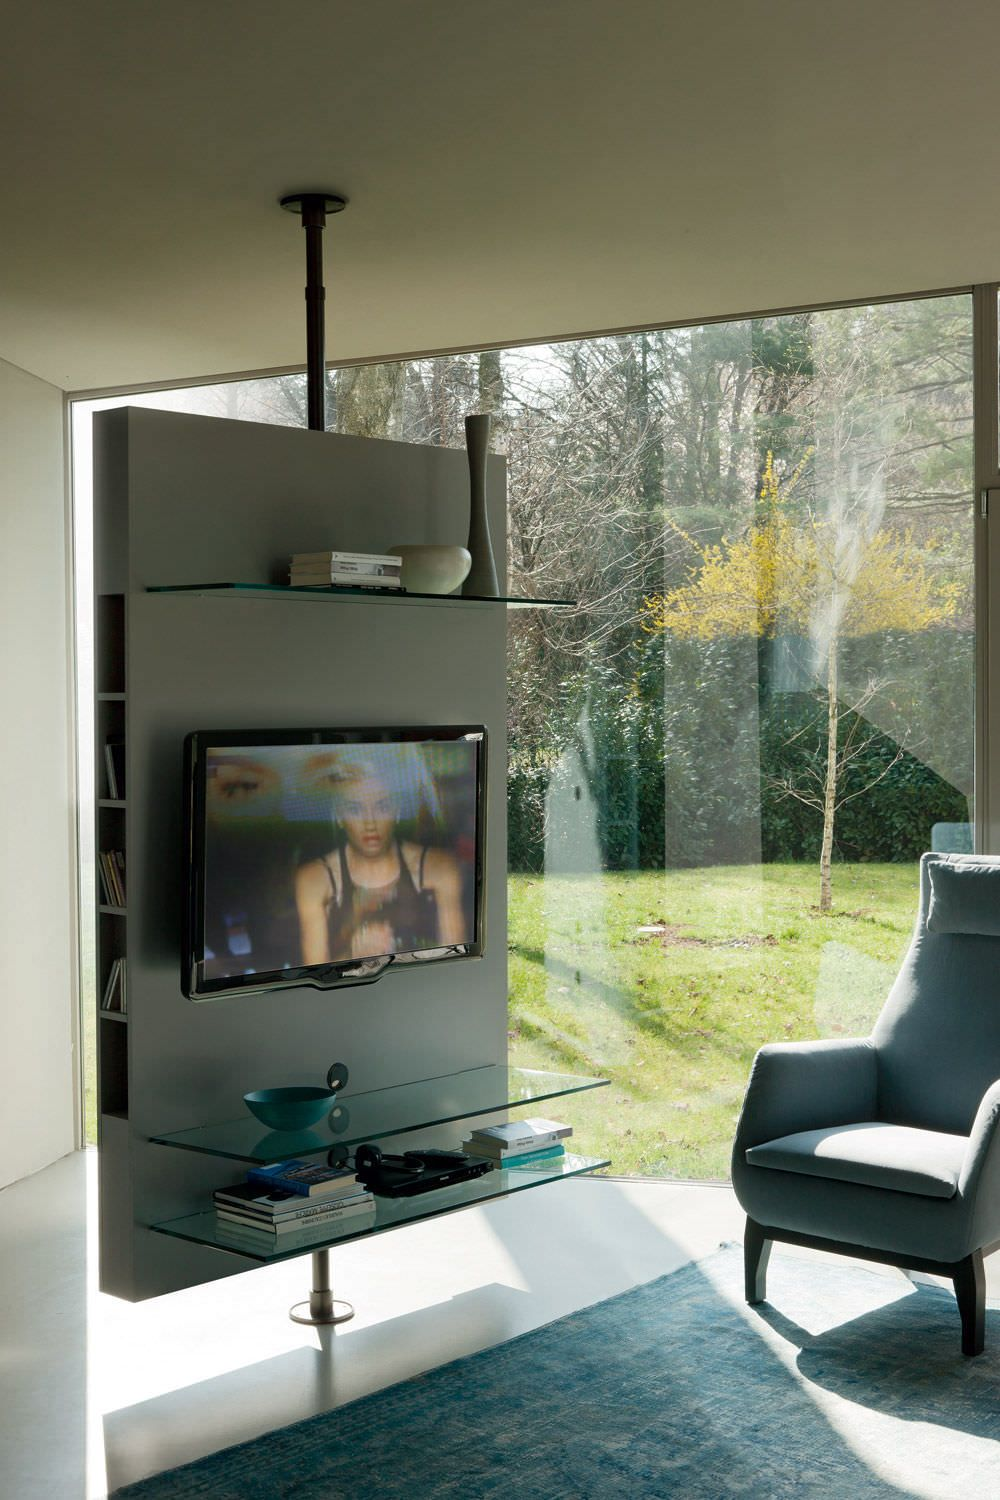 Porada Porta Tv Ubiqua.Image Result For Revolving Tv Unit Interiors Mueble De